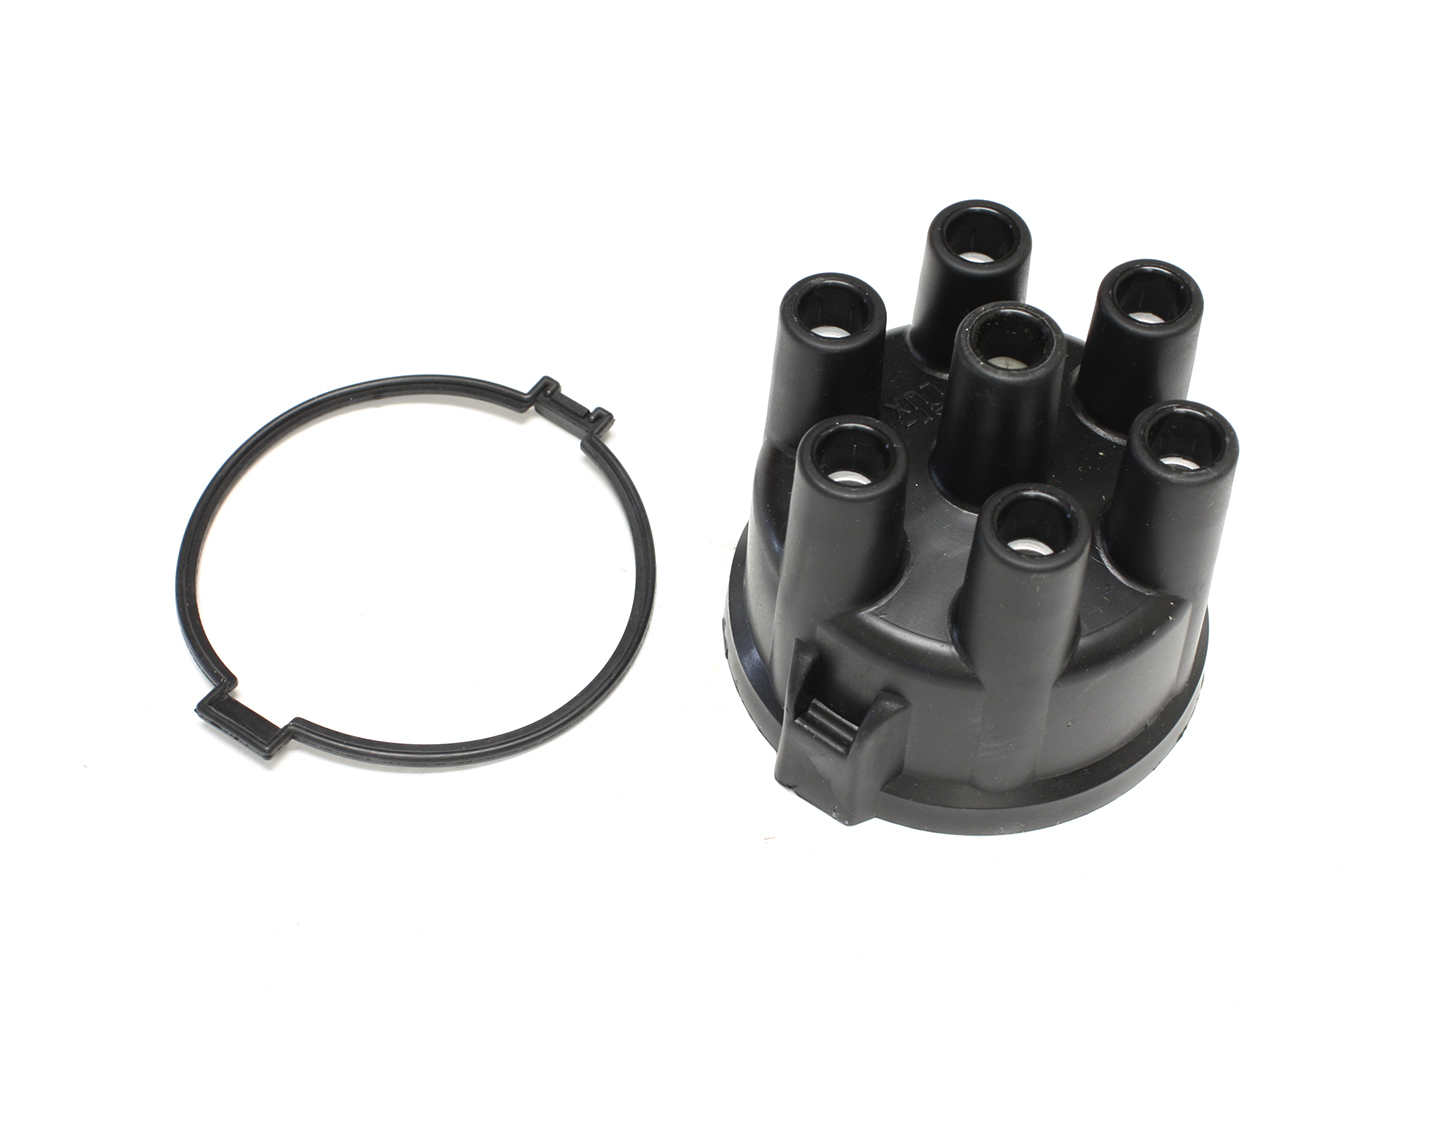 Pertronix Ignition 022-1602 Distributor Cap, HEI Style Terminals, Stainless Terminals, Clamp Down, Black, Non-Vented, Pertronix Industrial 6-Cylinder Distributors, Each